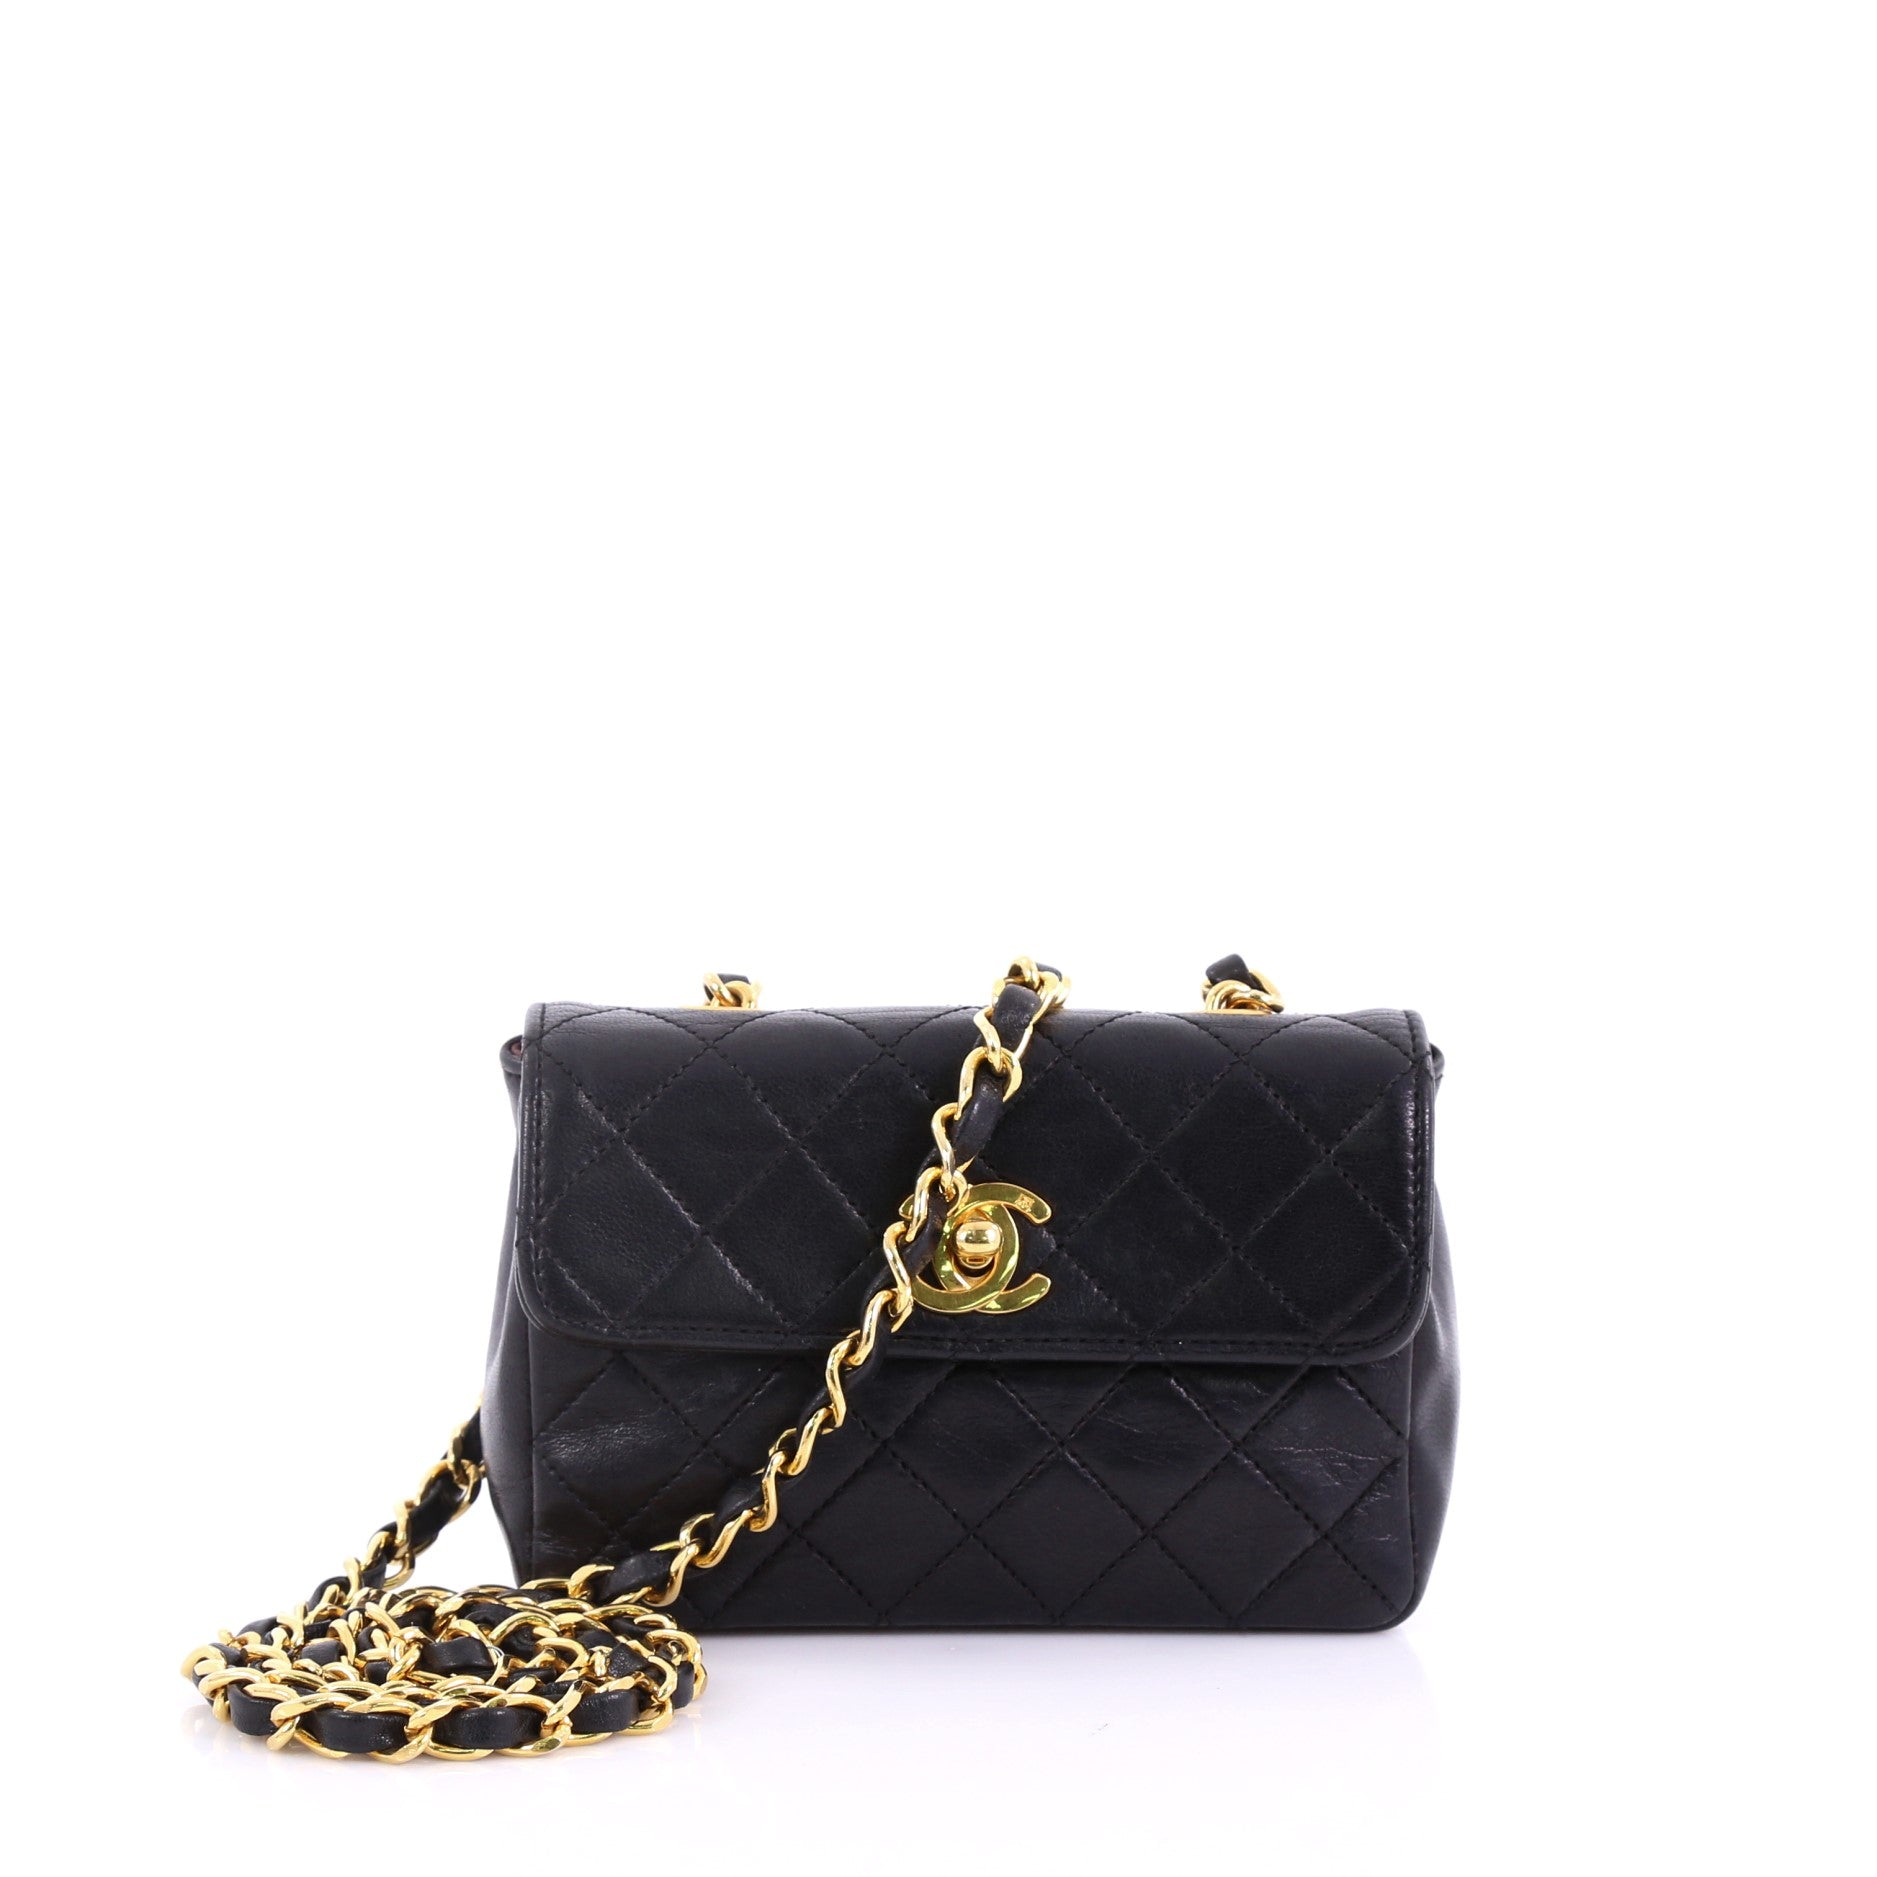 2d7030edf926 38632-8_Chanel_Vintage_CC_Chain_Flap_Bag_Quilted_L_2D_0002.jpg?v=1548713872